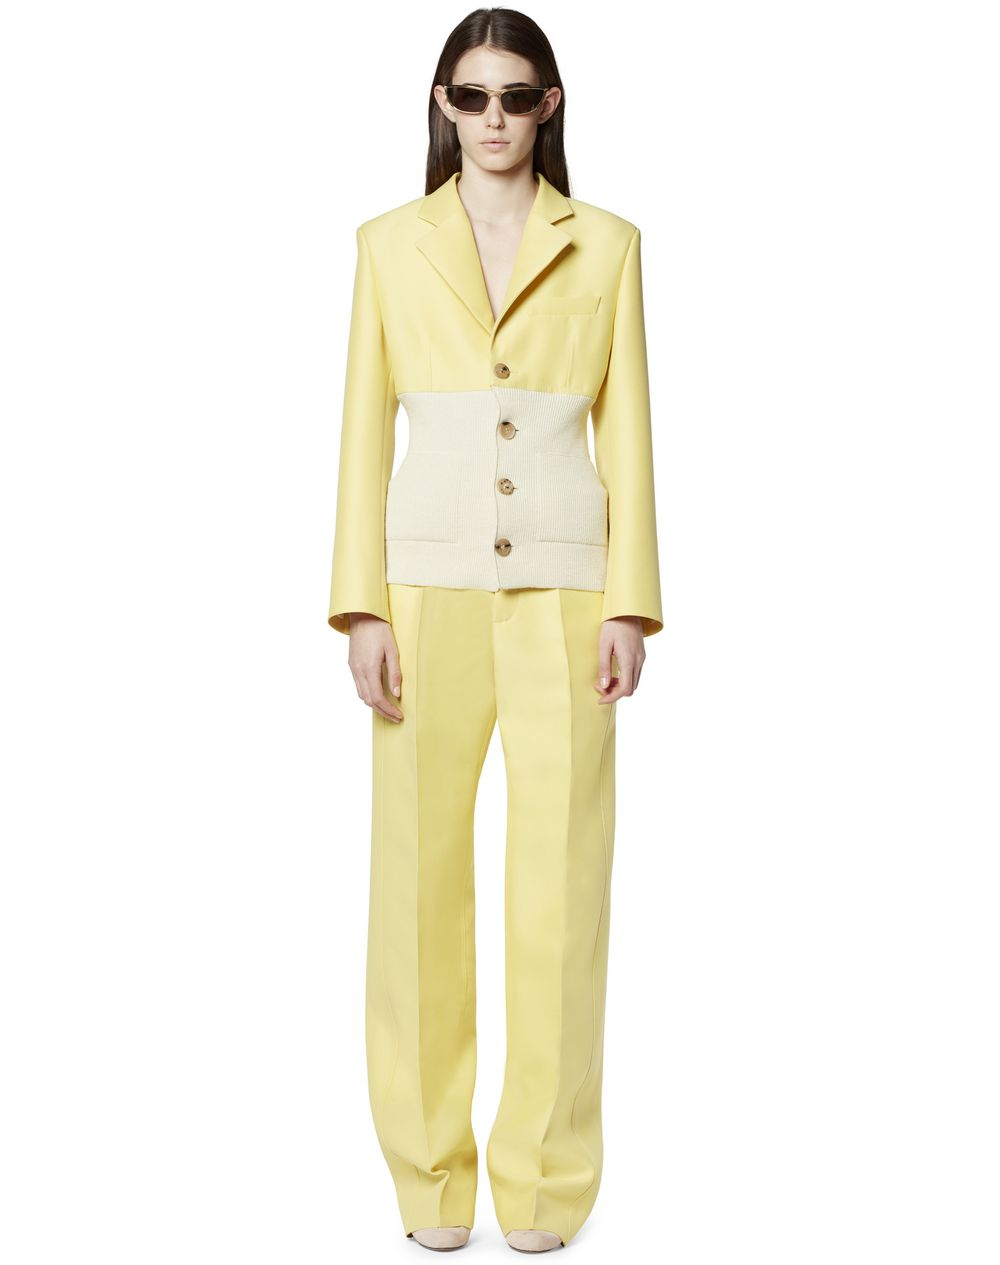 TAILORED DUAL-MATERIAL JACKET - Lanvin